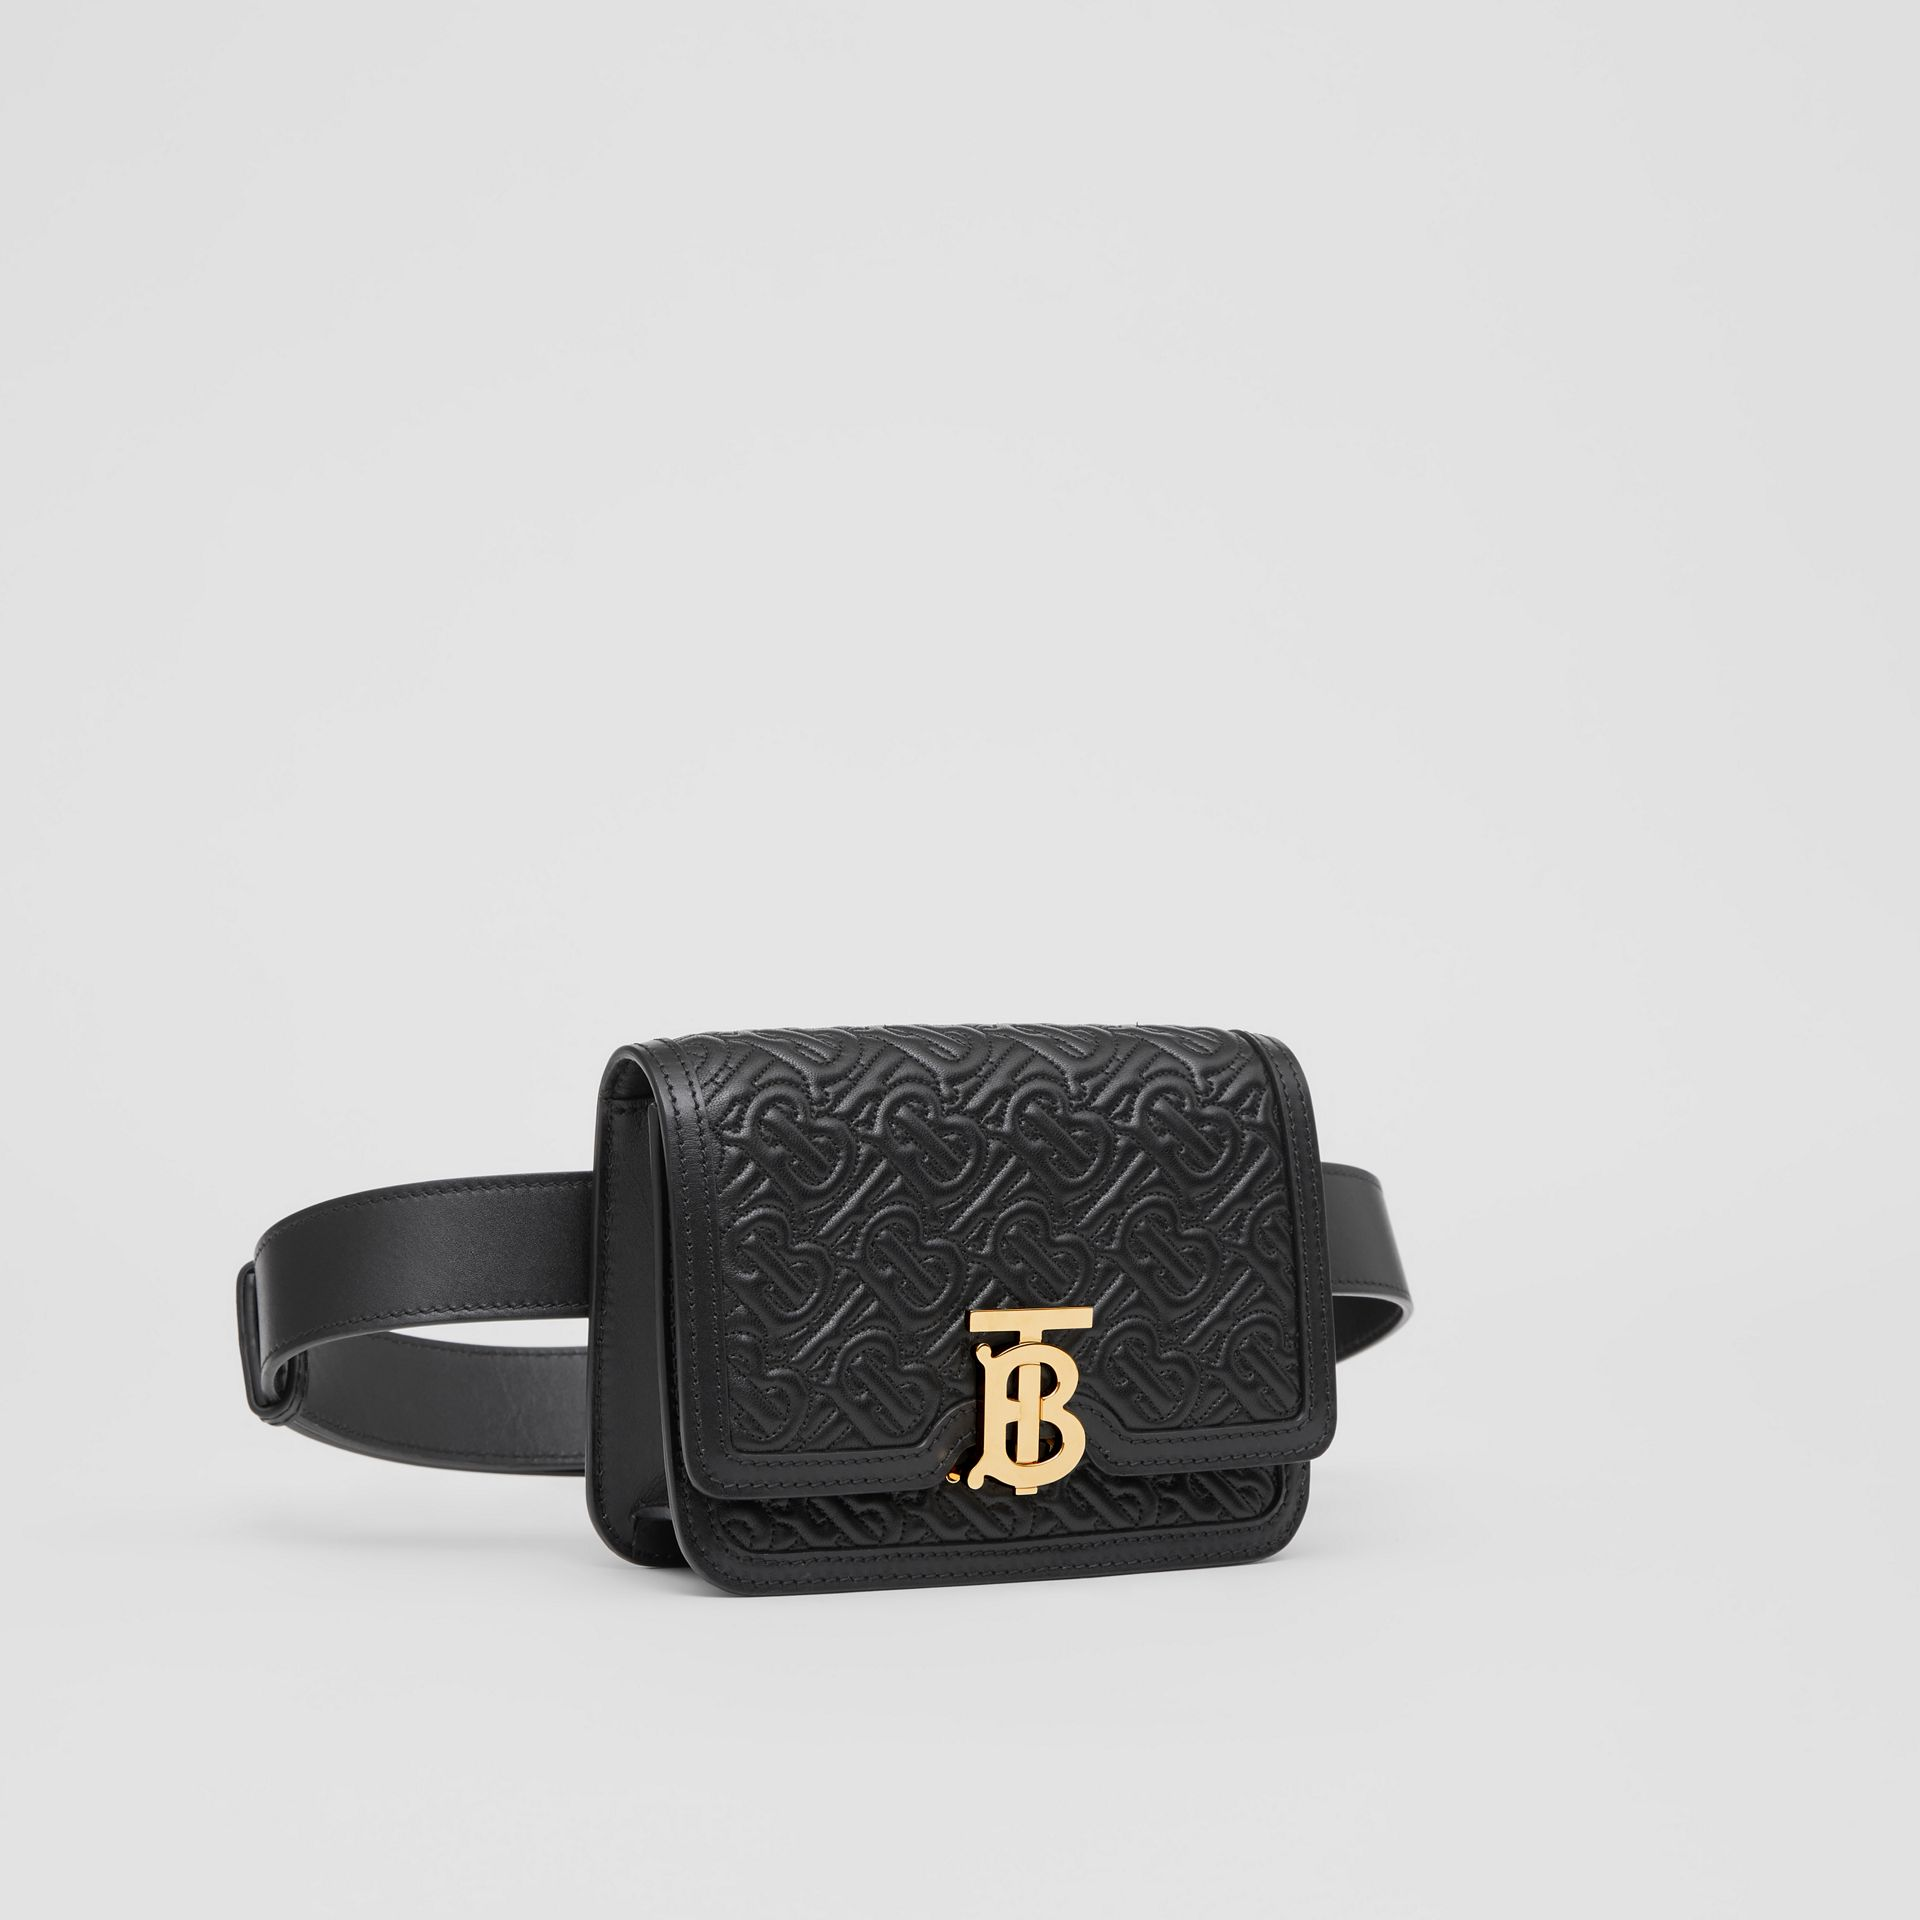 Belted Quilted Monogram Lambskin TB Bag in Black - Women | Burberry Australia - gallery image 6